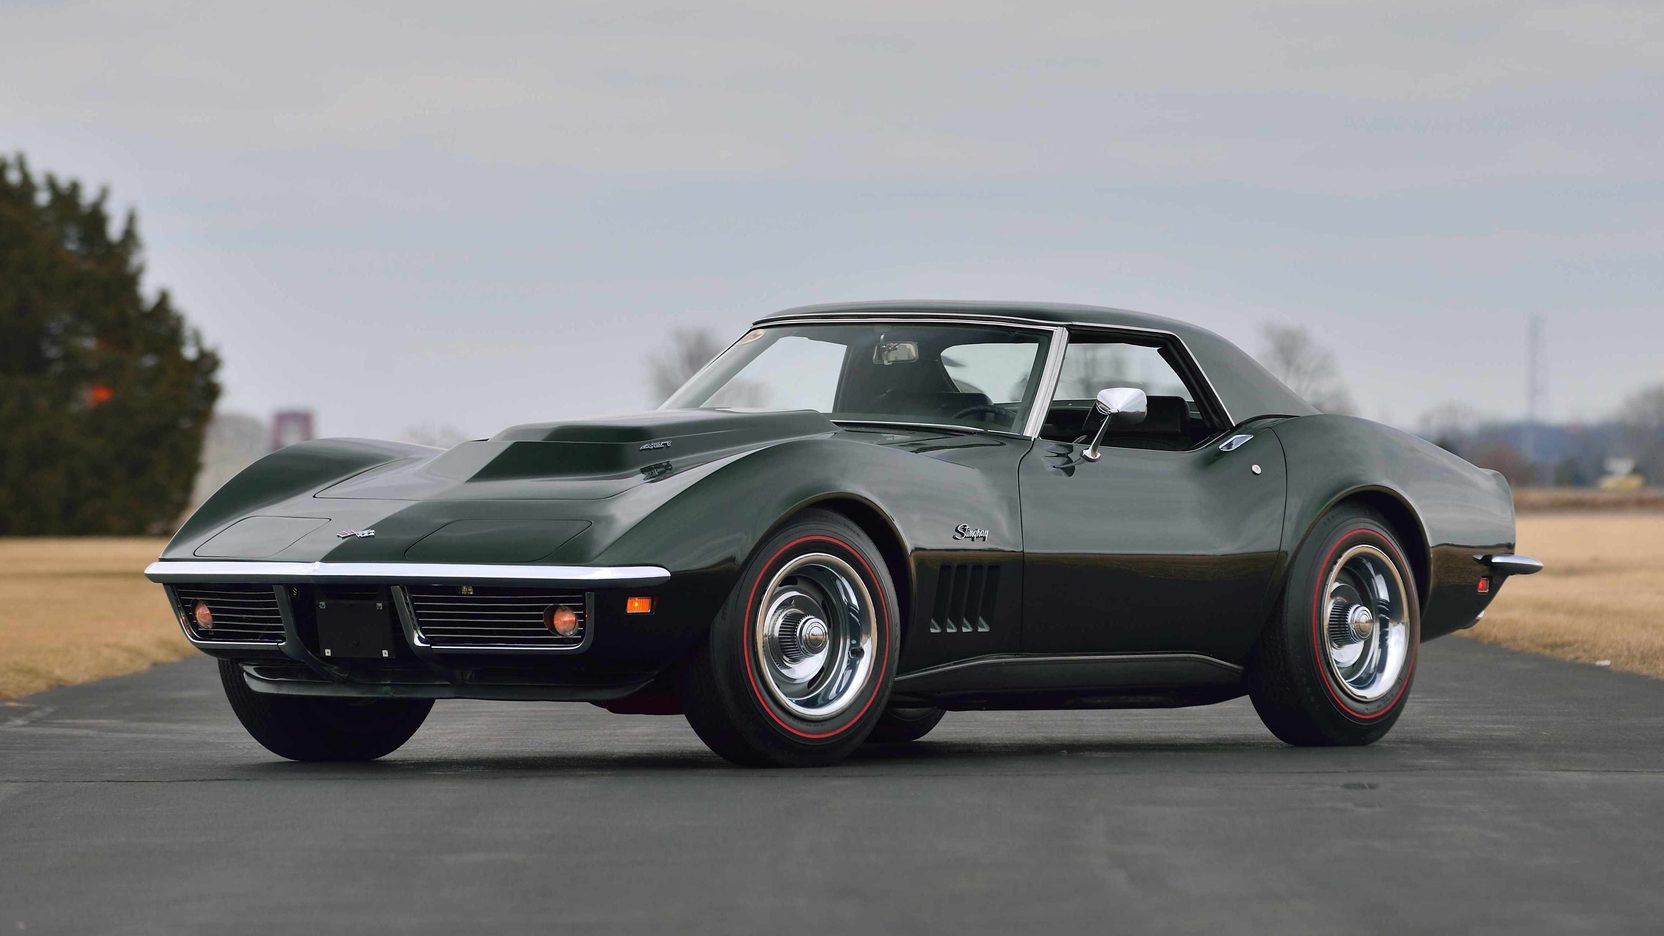 20 of the Fastest Muscle Cars Ever Built